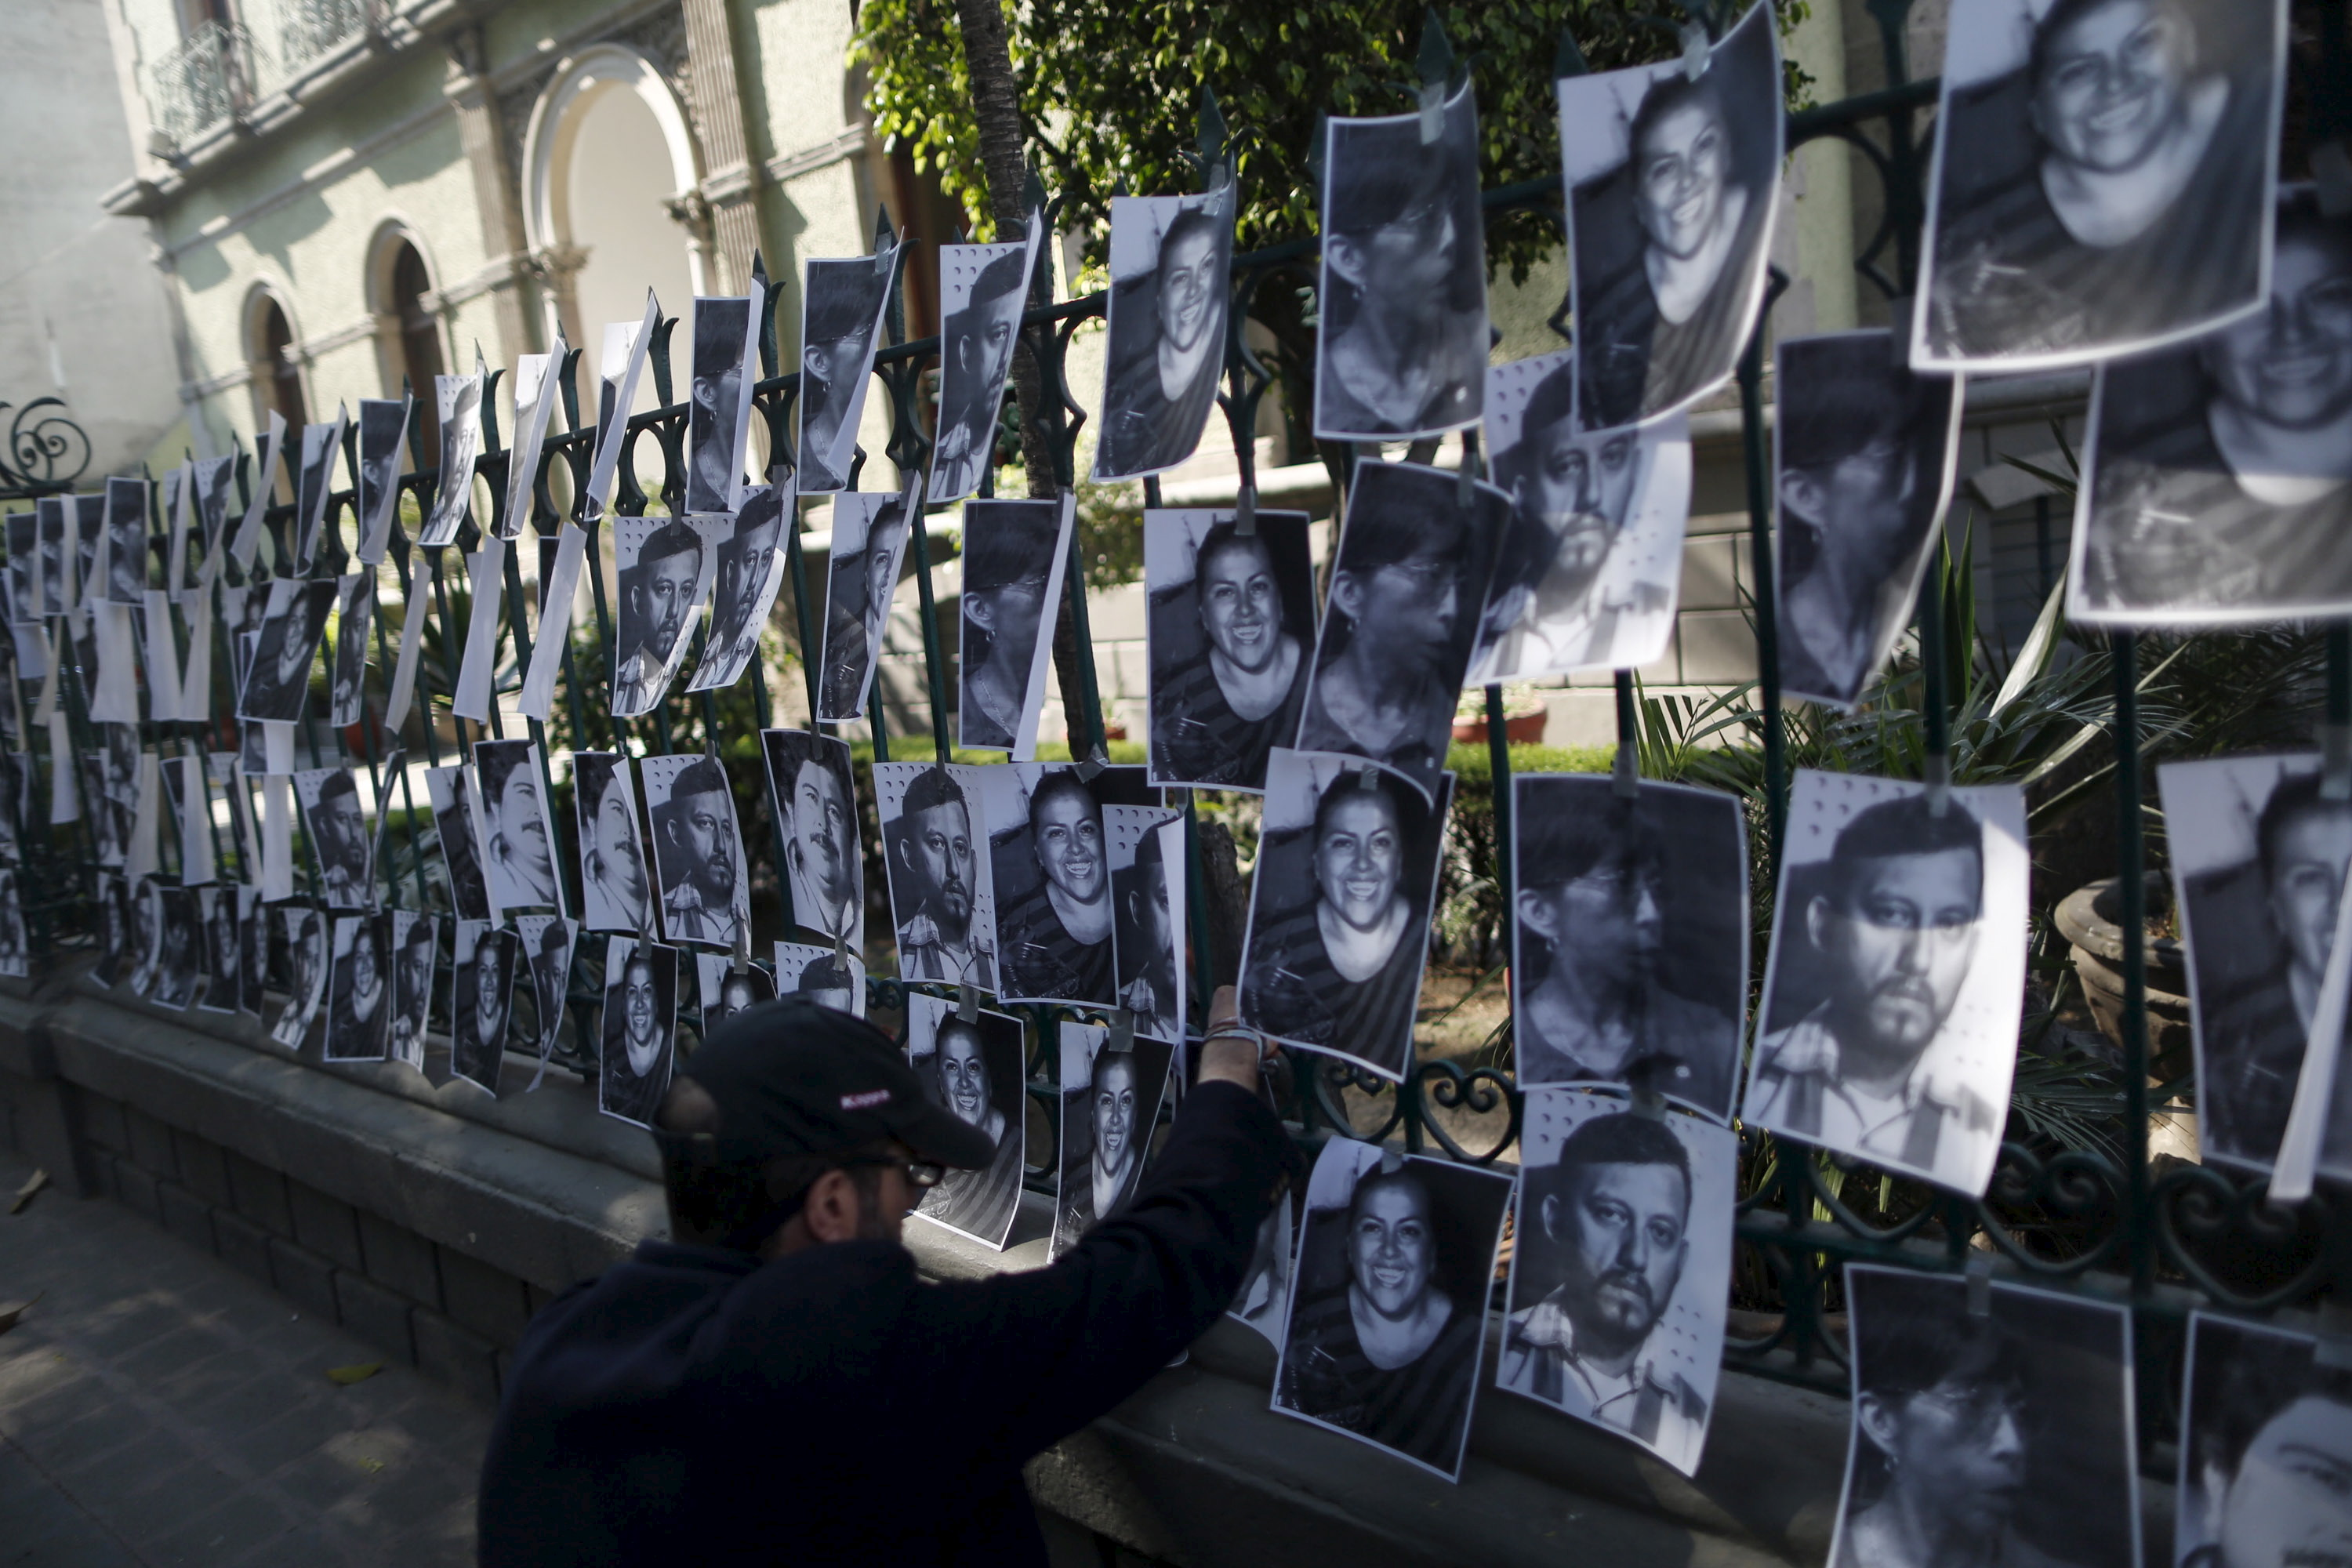 Journalism In Mexico 2015 Most Dangerous Year For